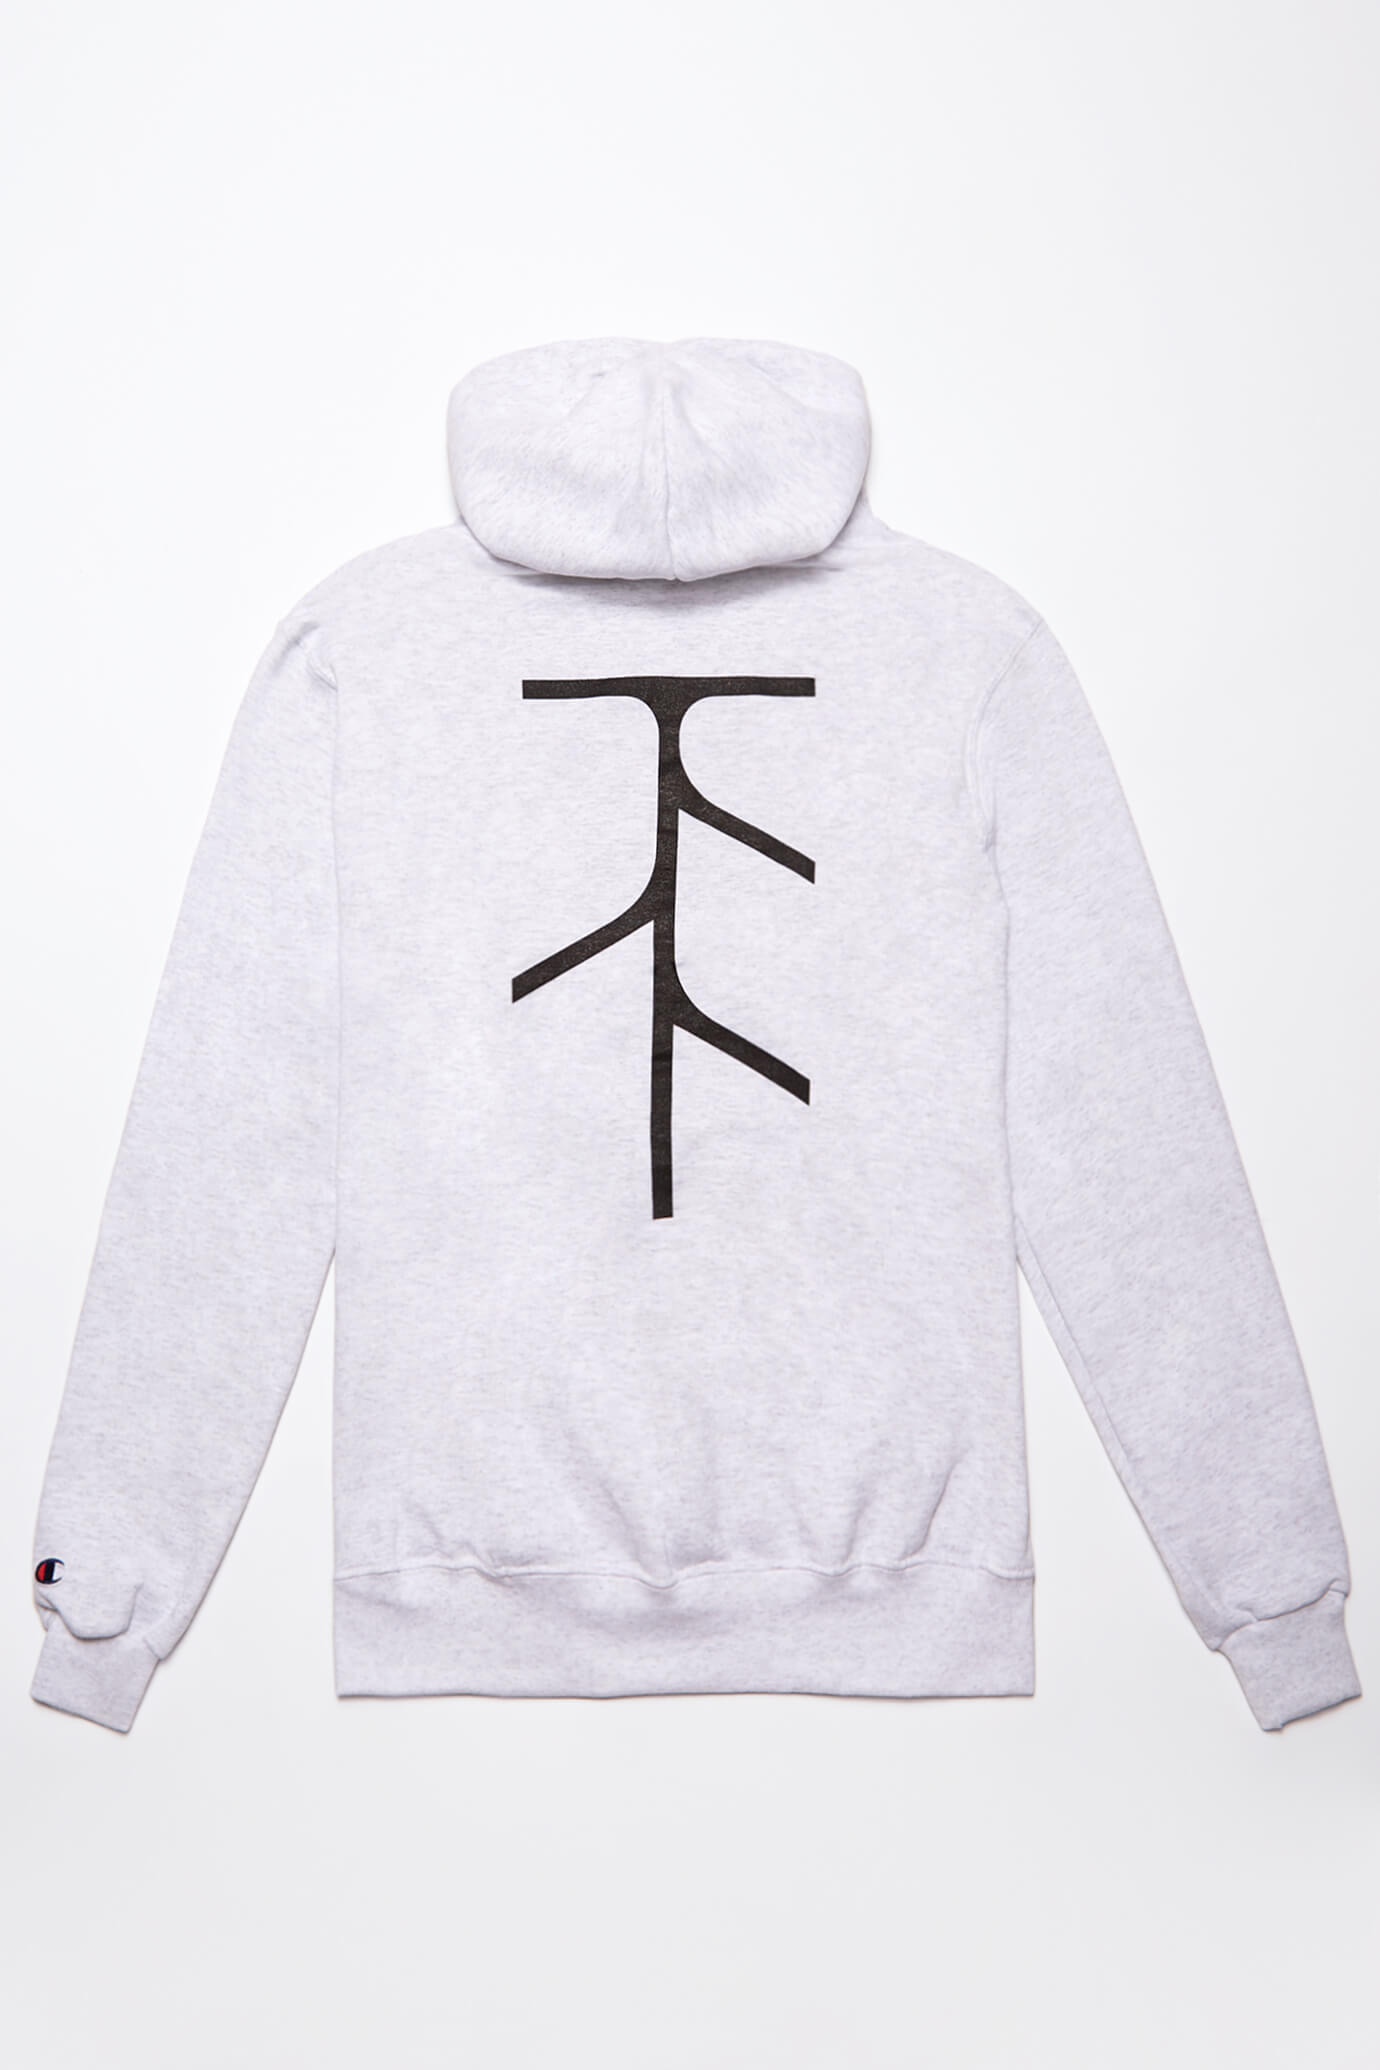 taproot pictures champion sweatshirt back